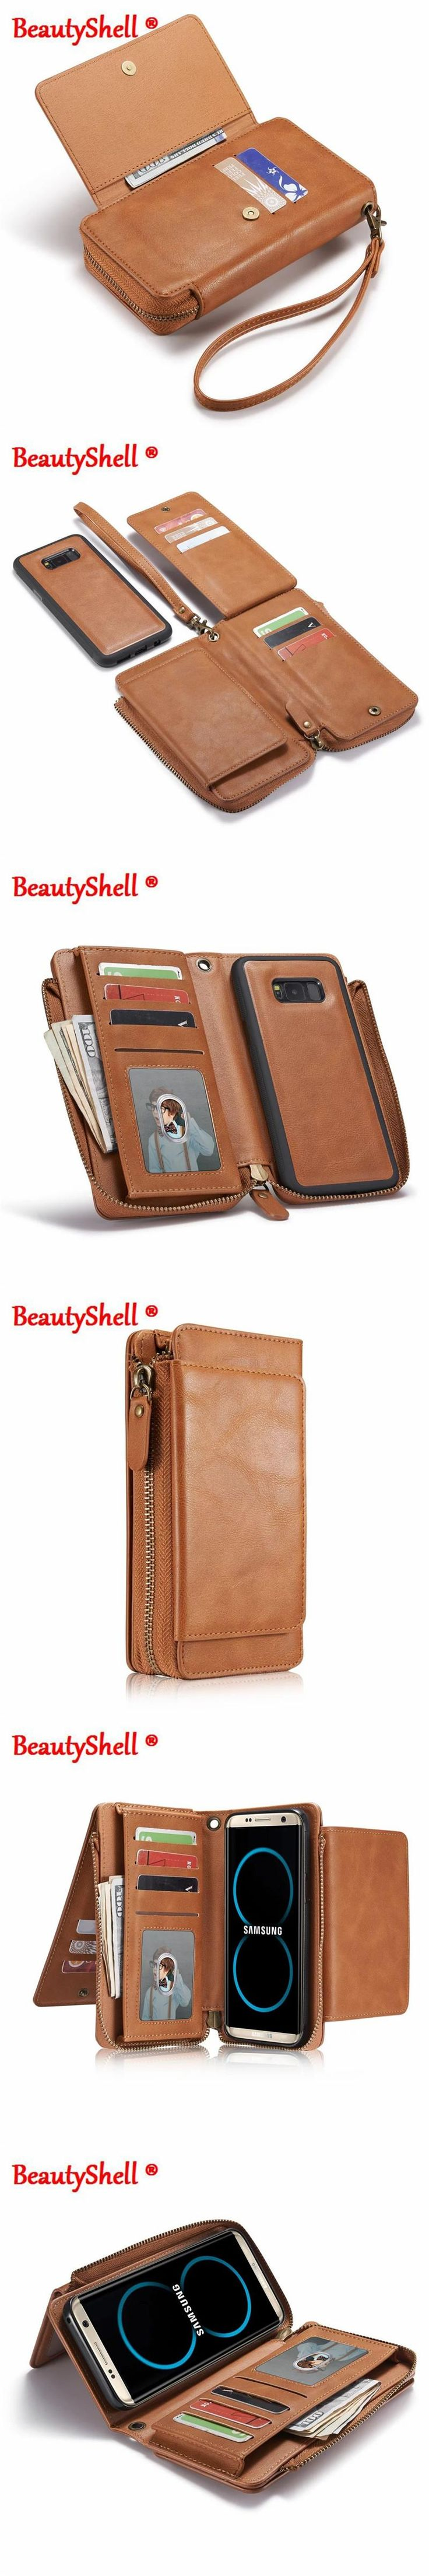 Multifunction Wallet Leather Case For Samsung S8 S8 Plus S5 S6 S7 edge Zipper Purse Pouch Cases Lady Women Handbag Style Cover